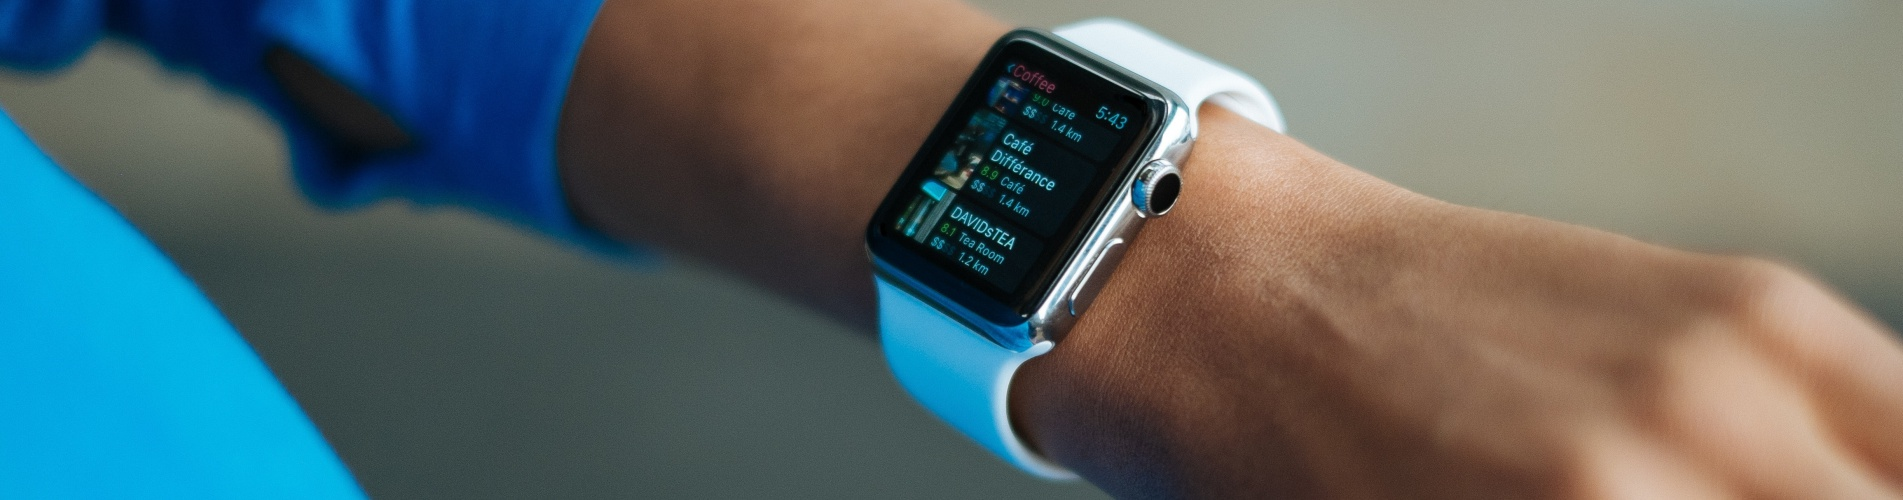 Apple Watch vs Fitbit: Which Smartwatch is Best for Heart Rate Monitoring?